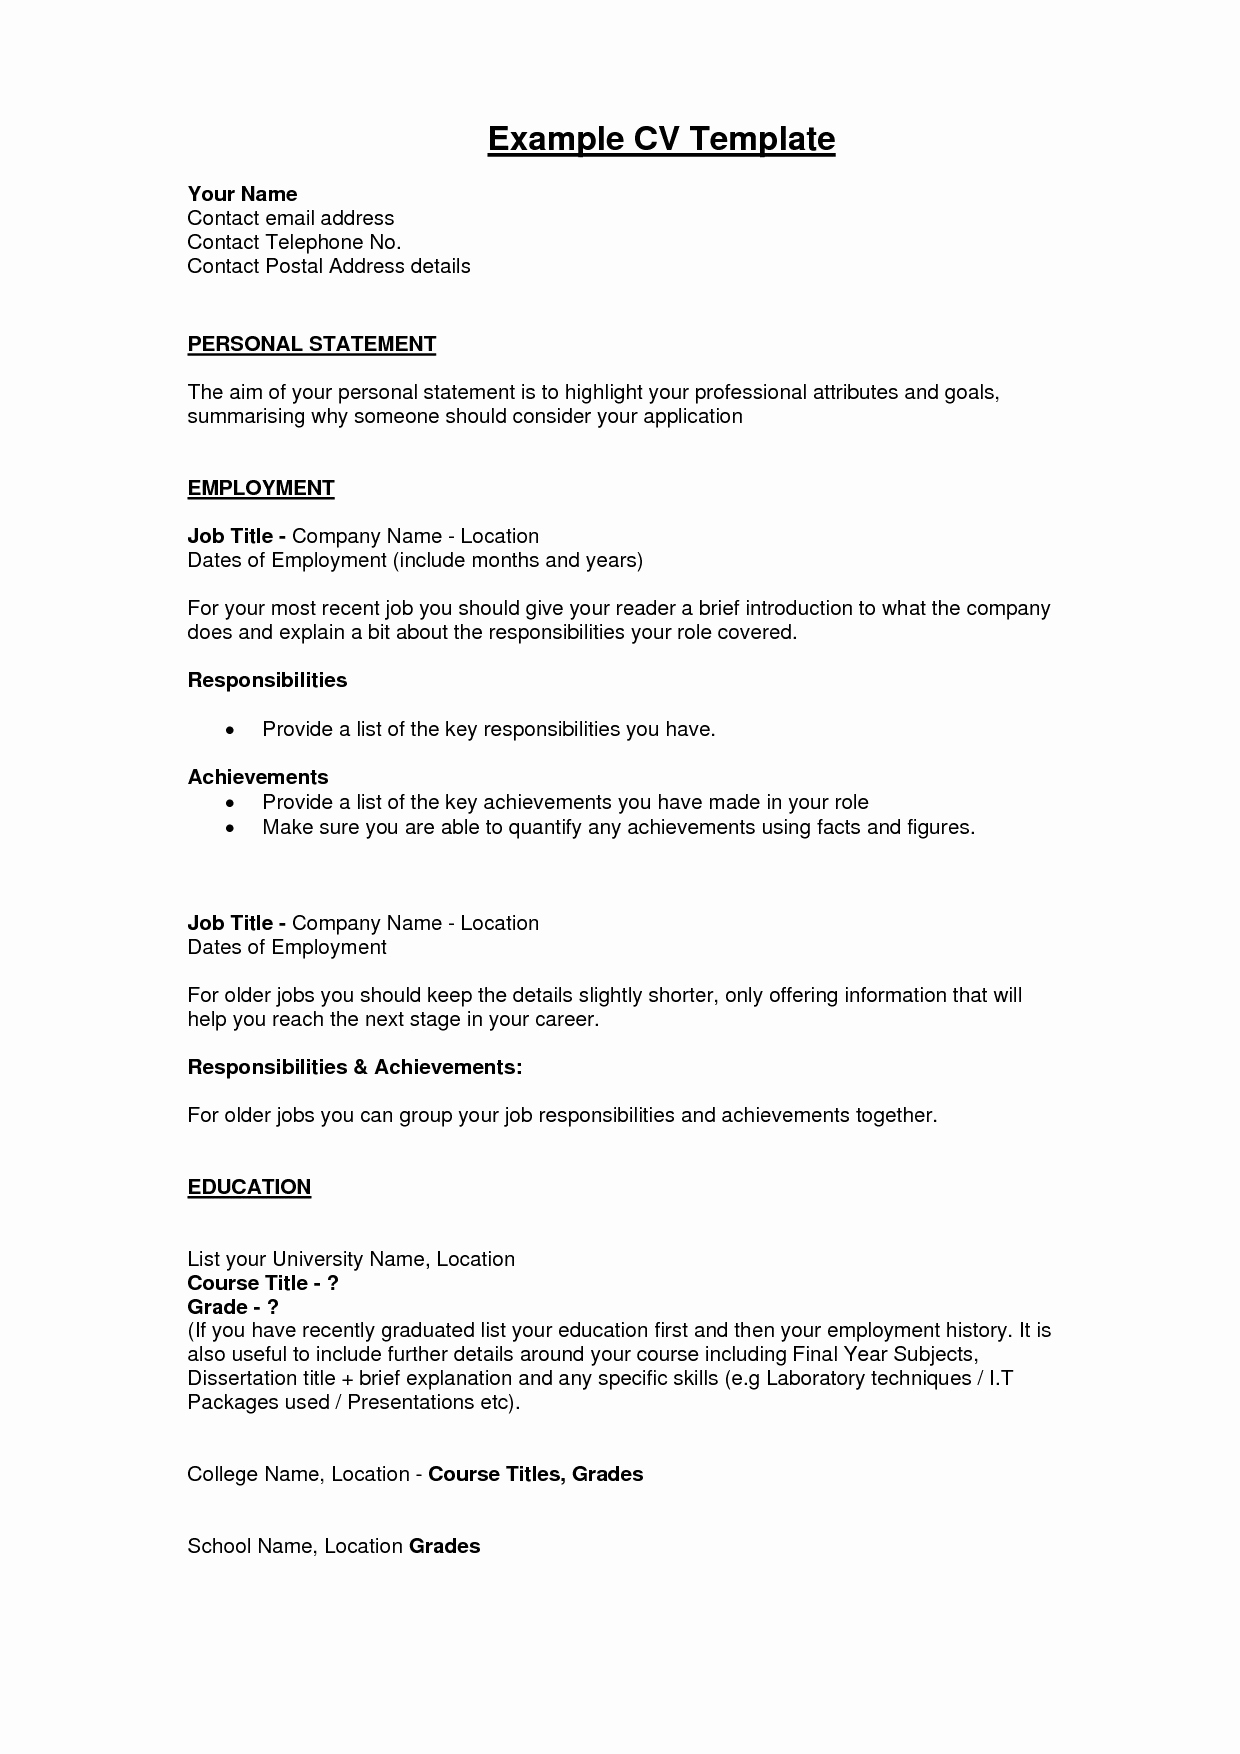 Tech Support Resume - Tech Support Resume Samples Beautiful 40 Beautiful Resume format for